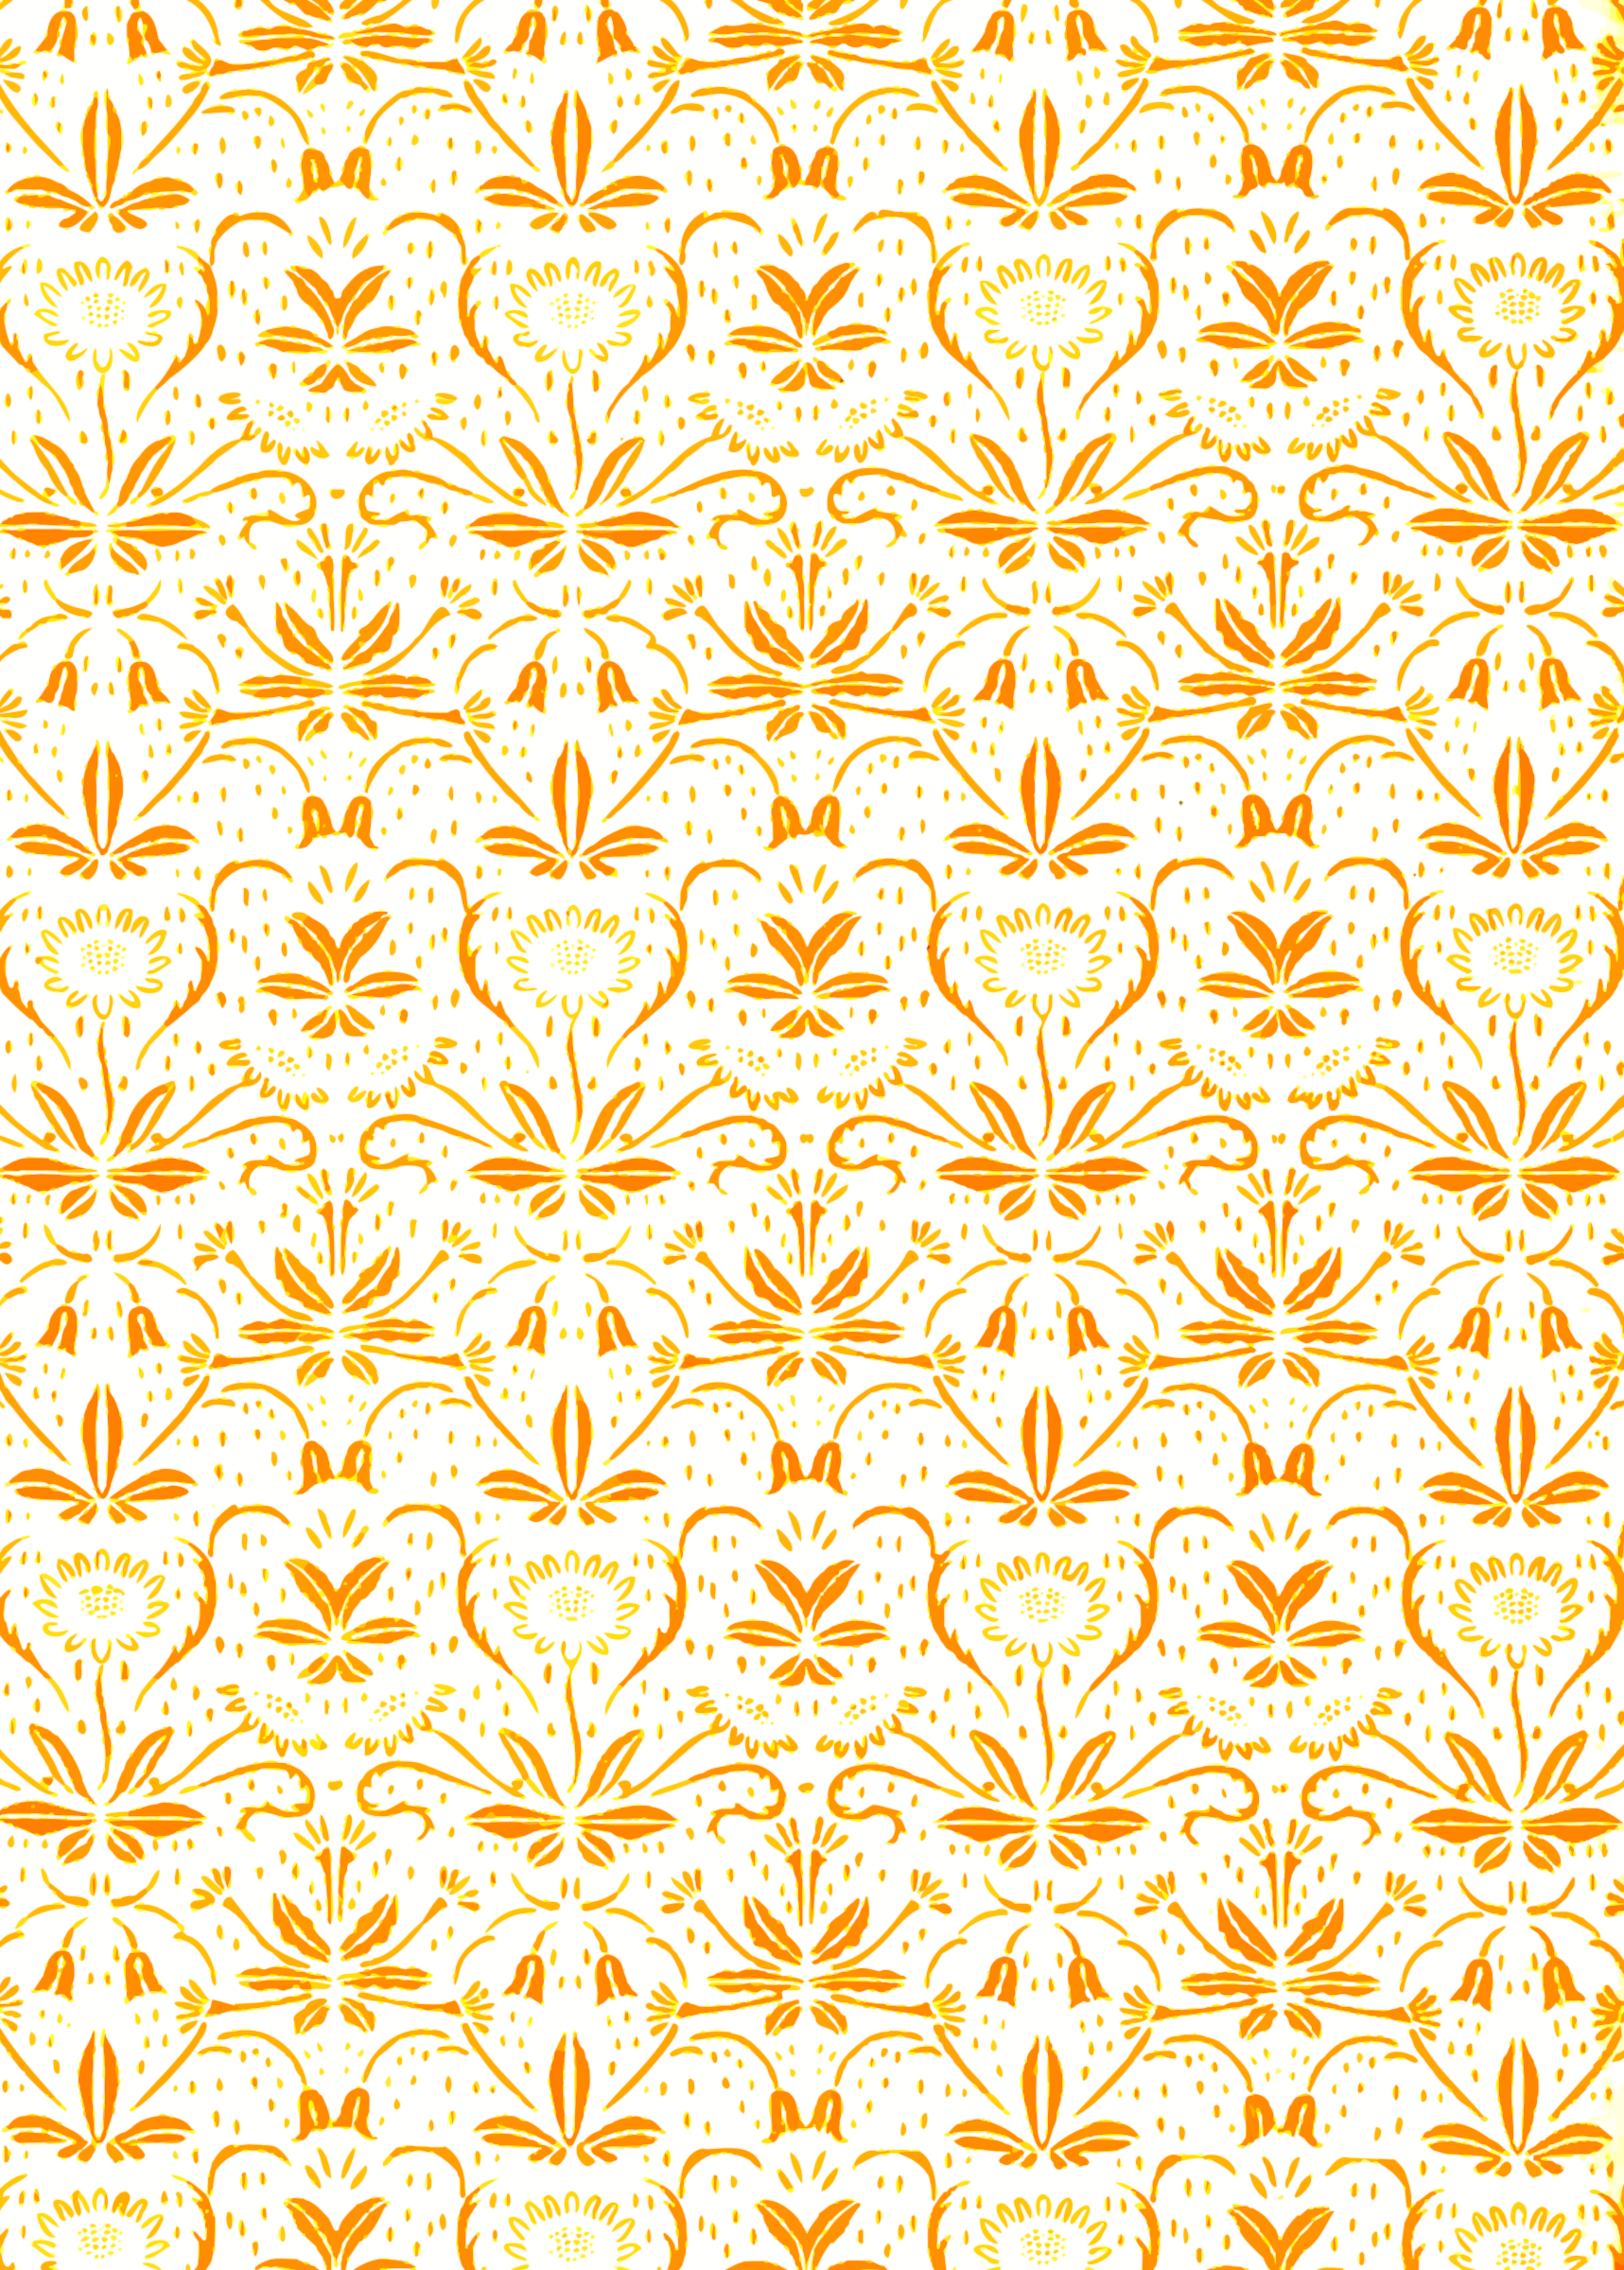 Flowery pattern (brighter) by Firkin